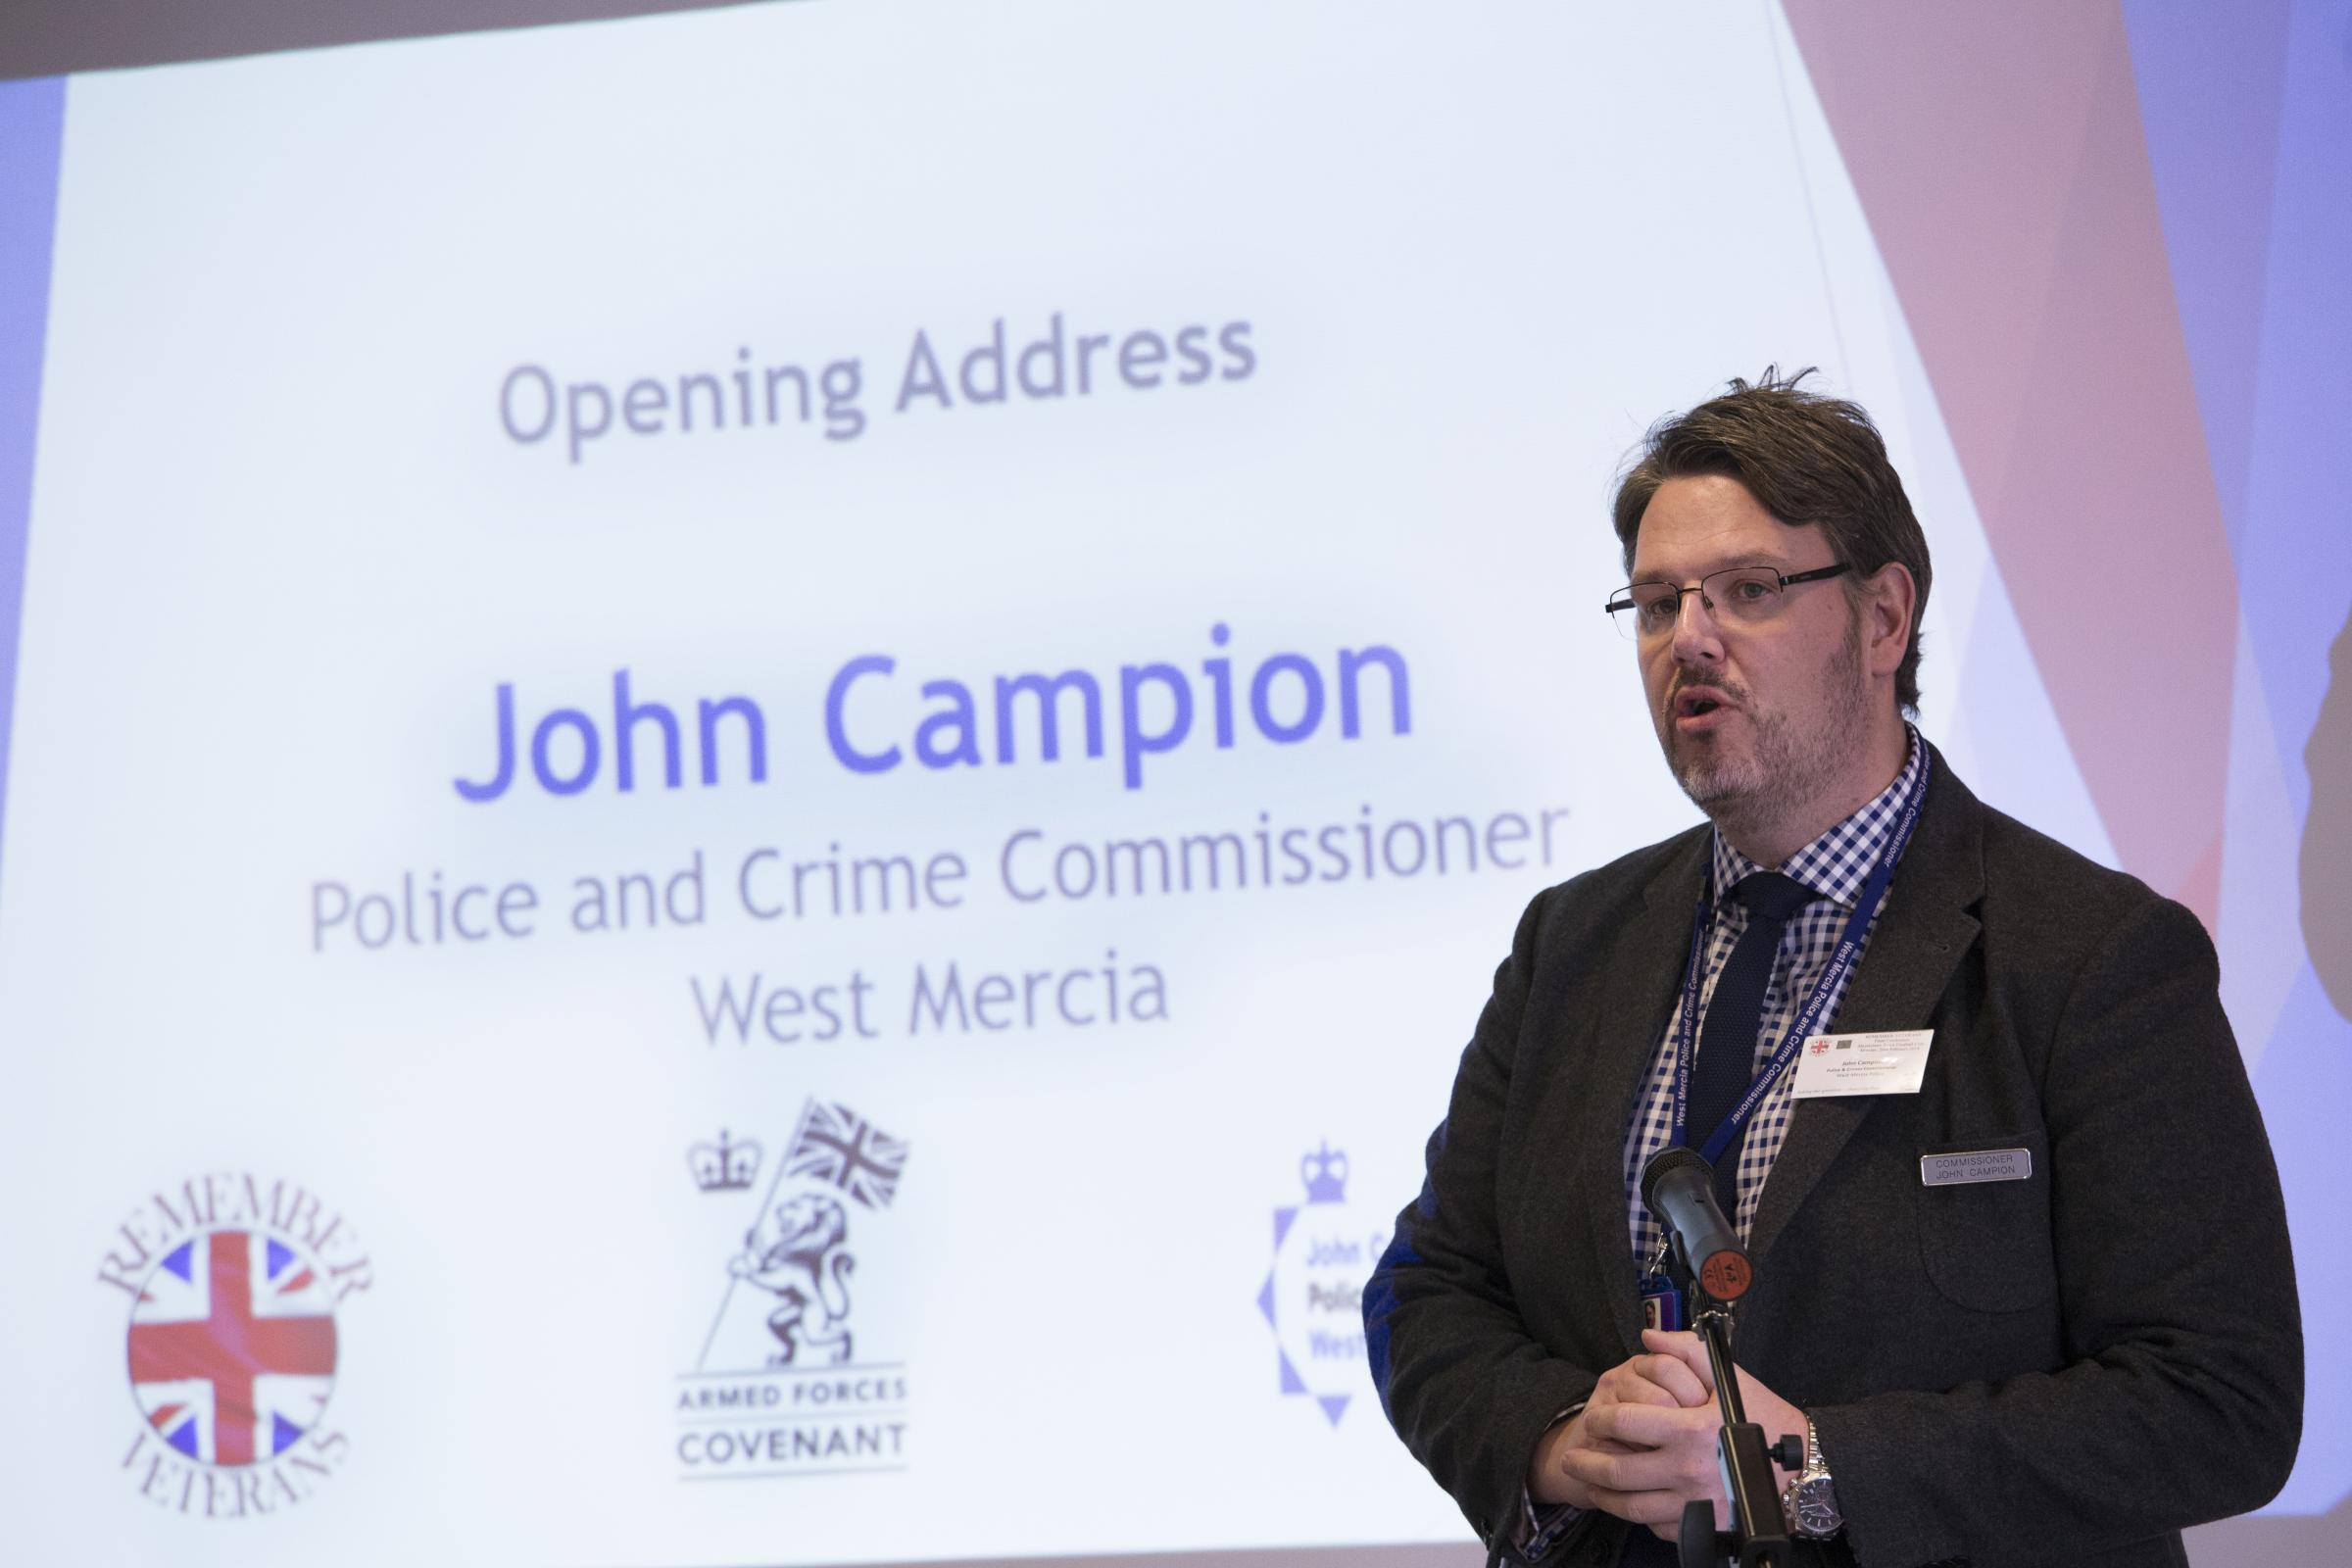 John Campion, West Mercia police and crime commissioner